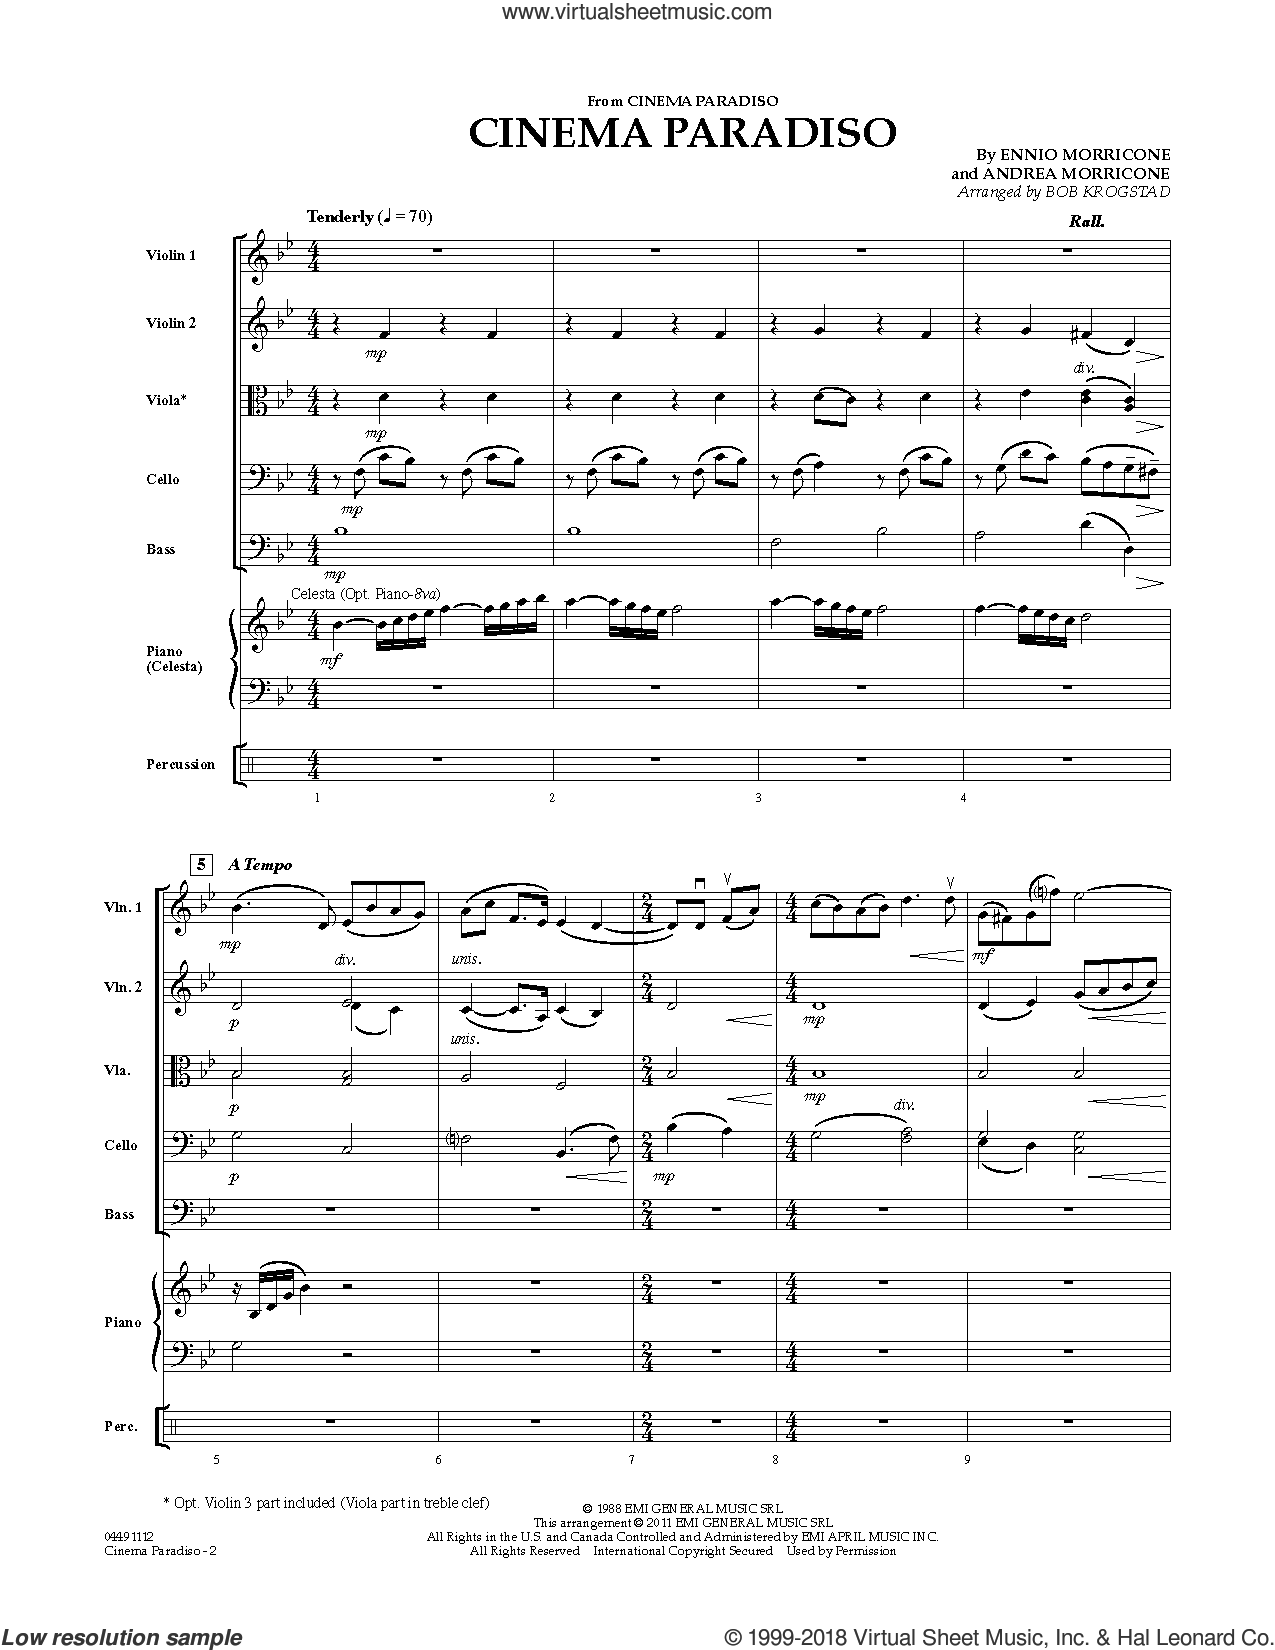 Cinema Paradiso (COMPLETE) sheet music for orchestra by Ennio Morricone, Andrea Morricone and Bob Krogstad, intermediate skill level